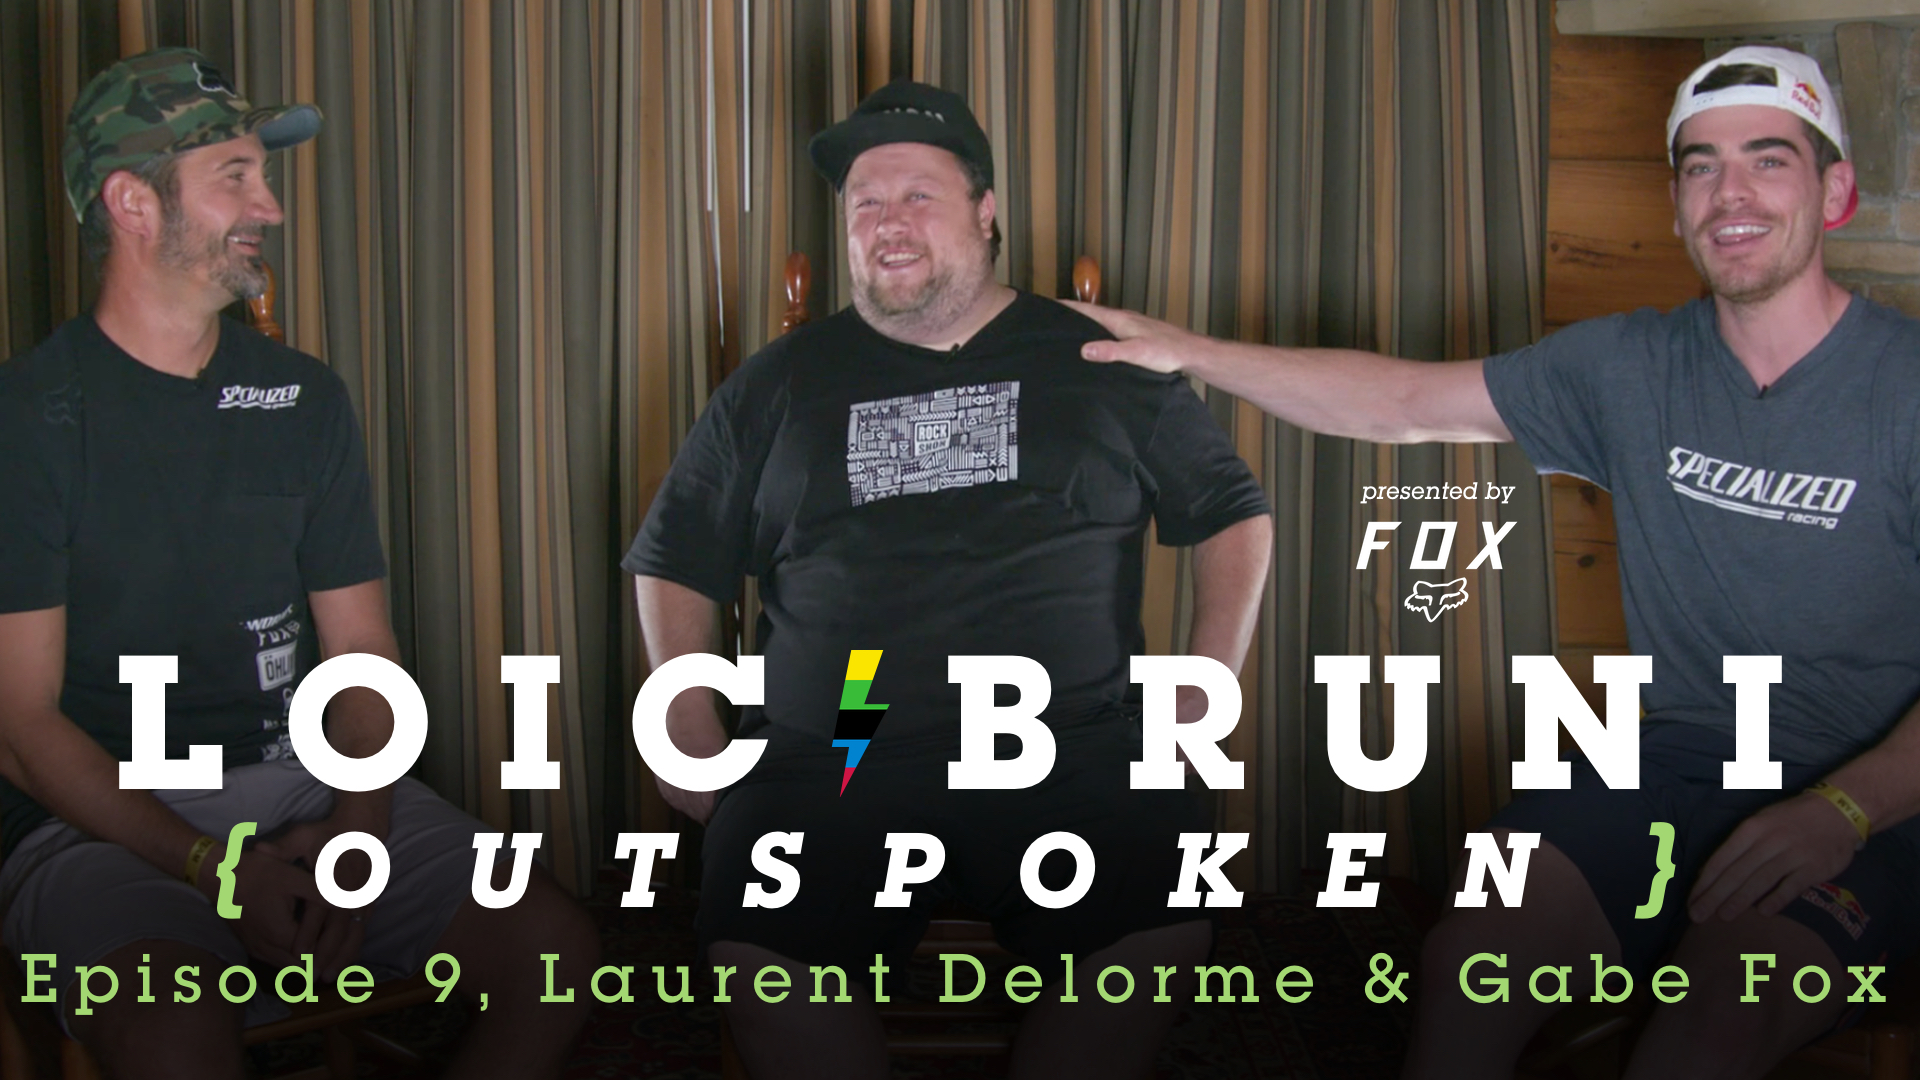 LOIC BRUNI'S OUTSPOKEN - Episode 9 - MTB Race Team Managers, Laurent Delorme and Gabe Fox